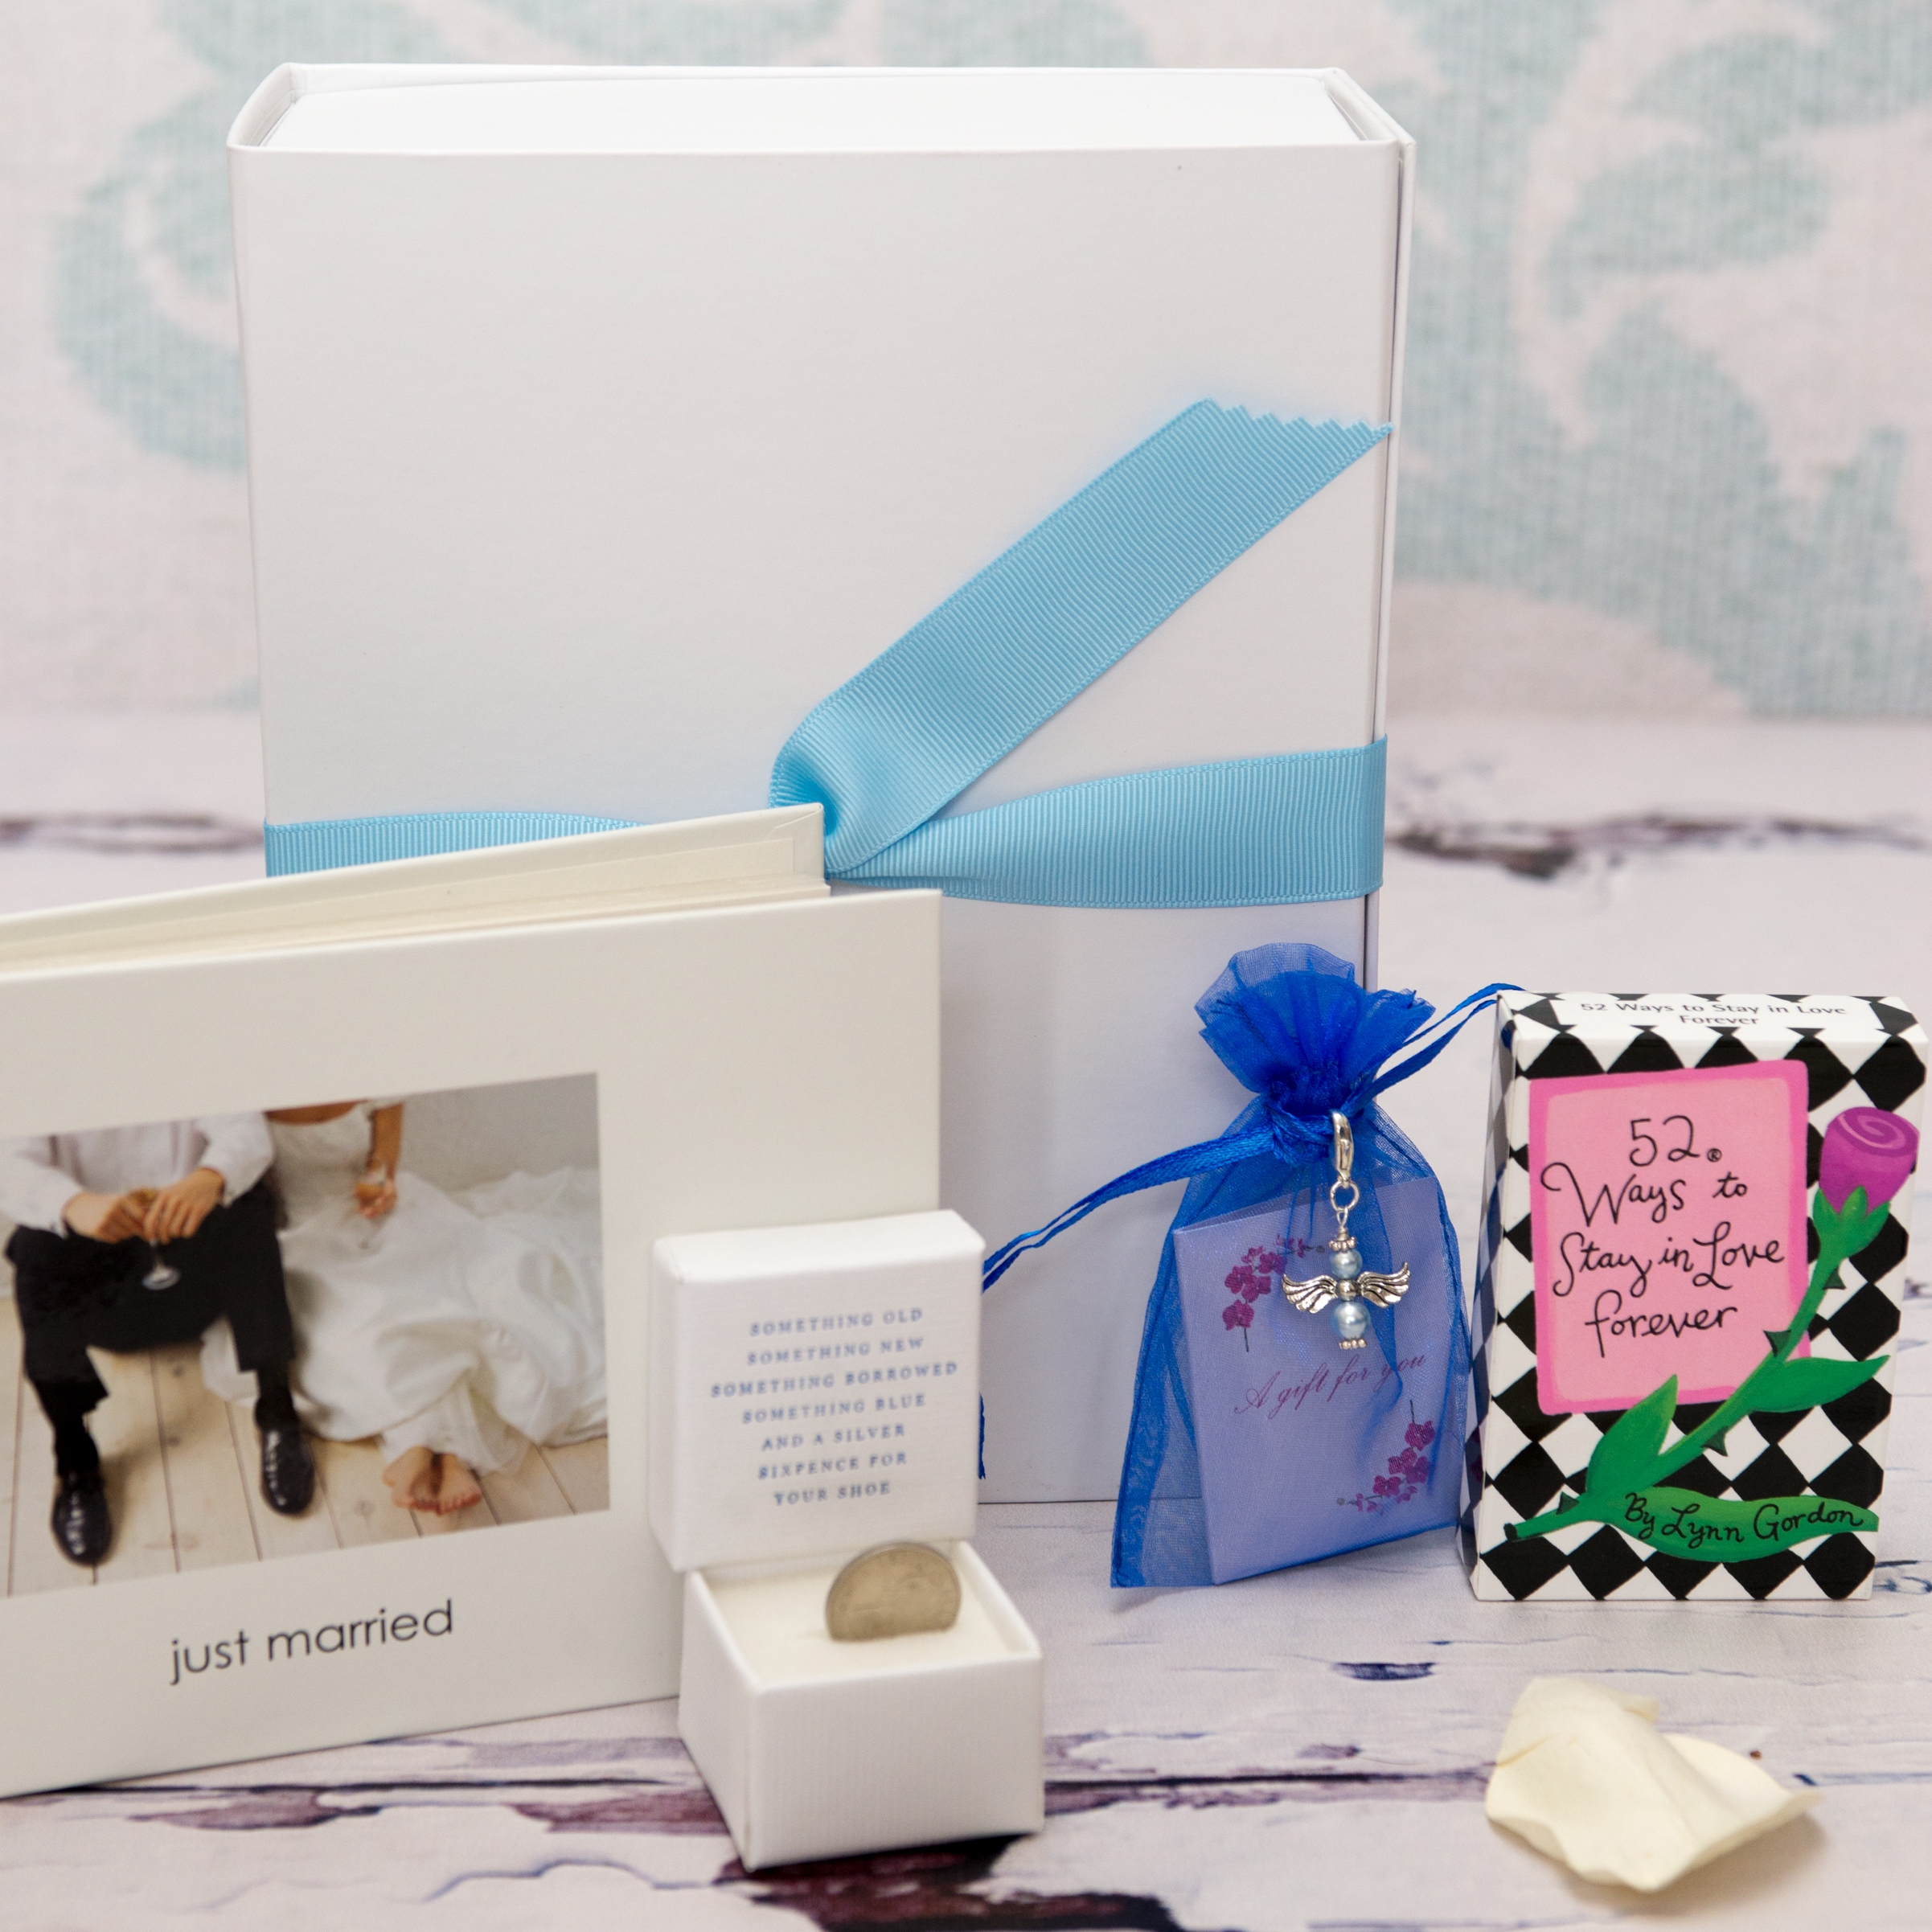 Wedding Gift Hampers Uk: Something Old, Something New, Something Borrowed